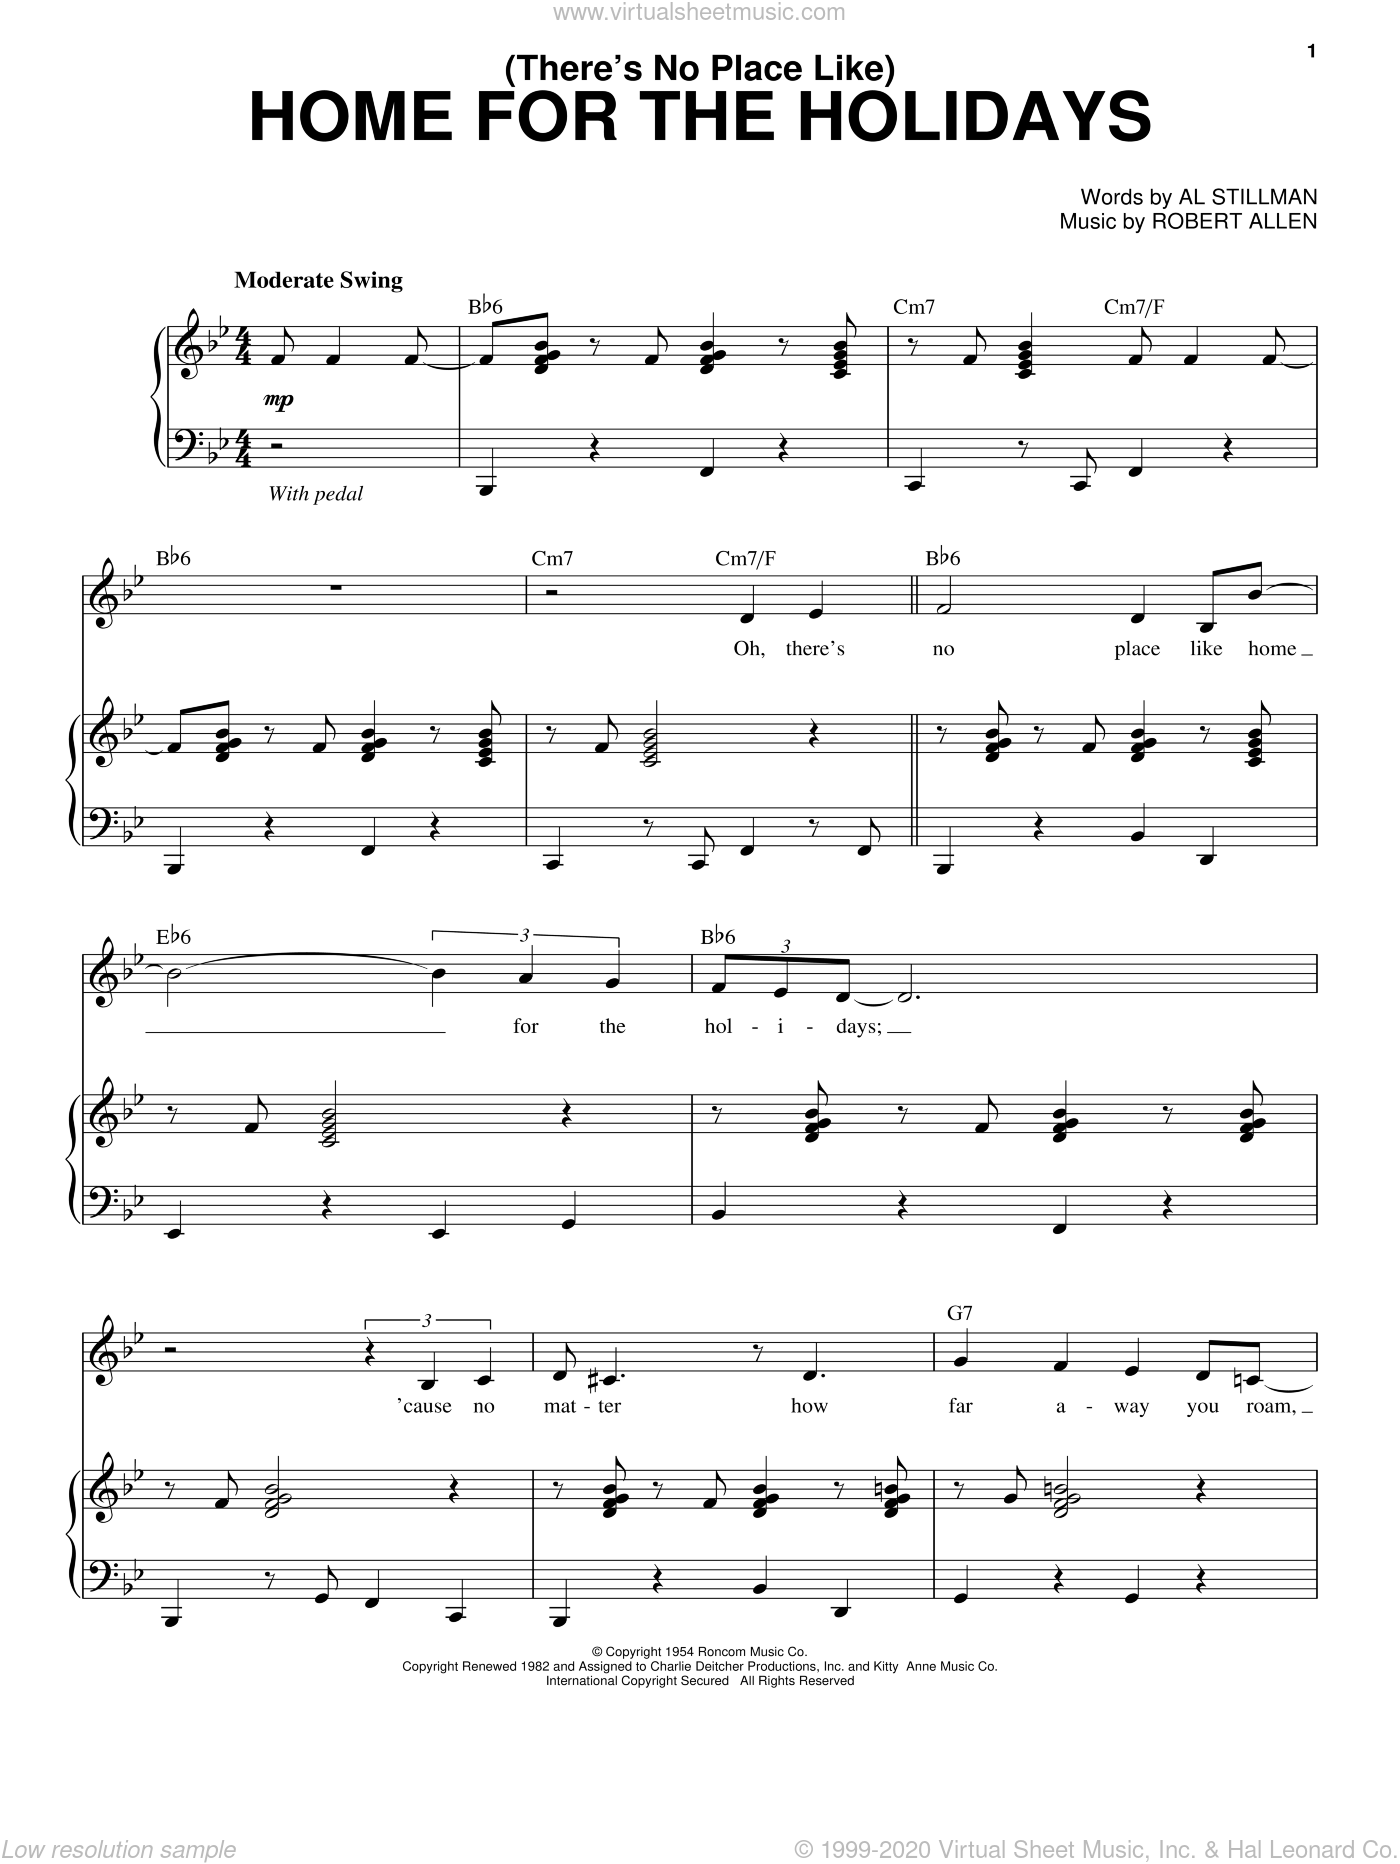 (There's No Place Like) Home For The Holidays sheet music for voice and piano by Robert Allen